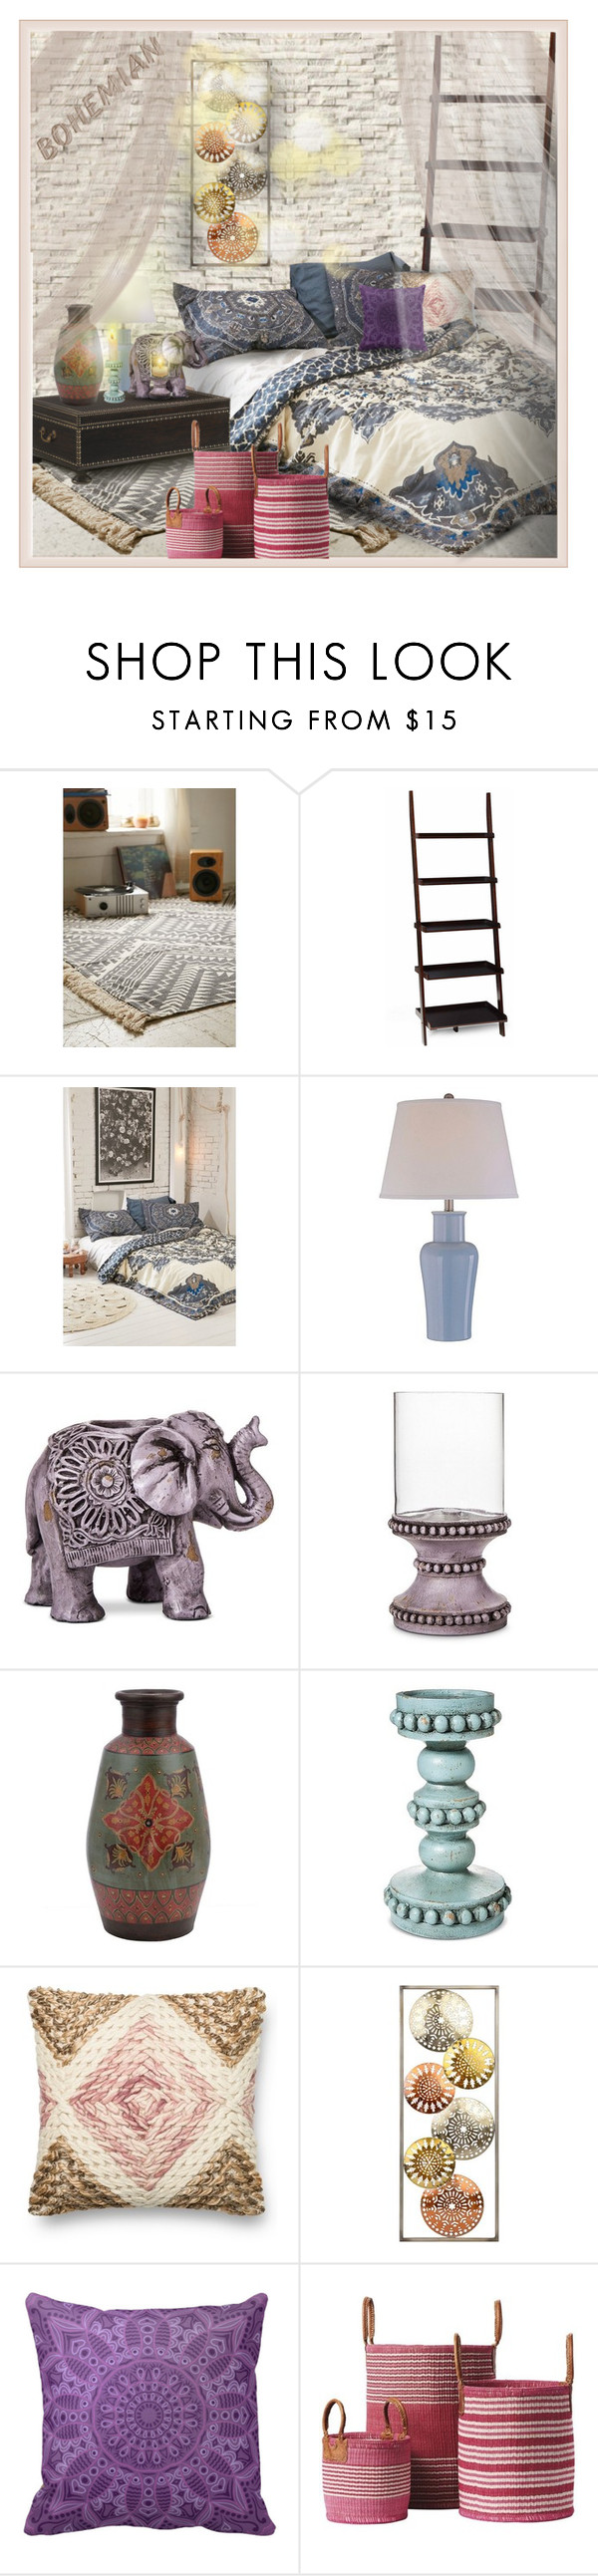 """Boho Chich Decor"" by falticska-cerasella ❤ liked on Polyvore featuring interior, interiors, interior design, home, home decor, interior decorating, Magical Thinking, Lite Source, Boho Boutique and Loloi Rugs"